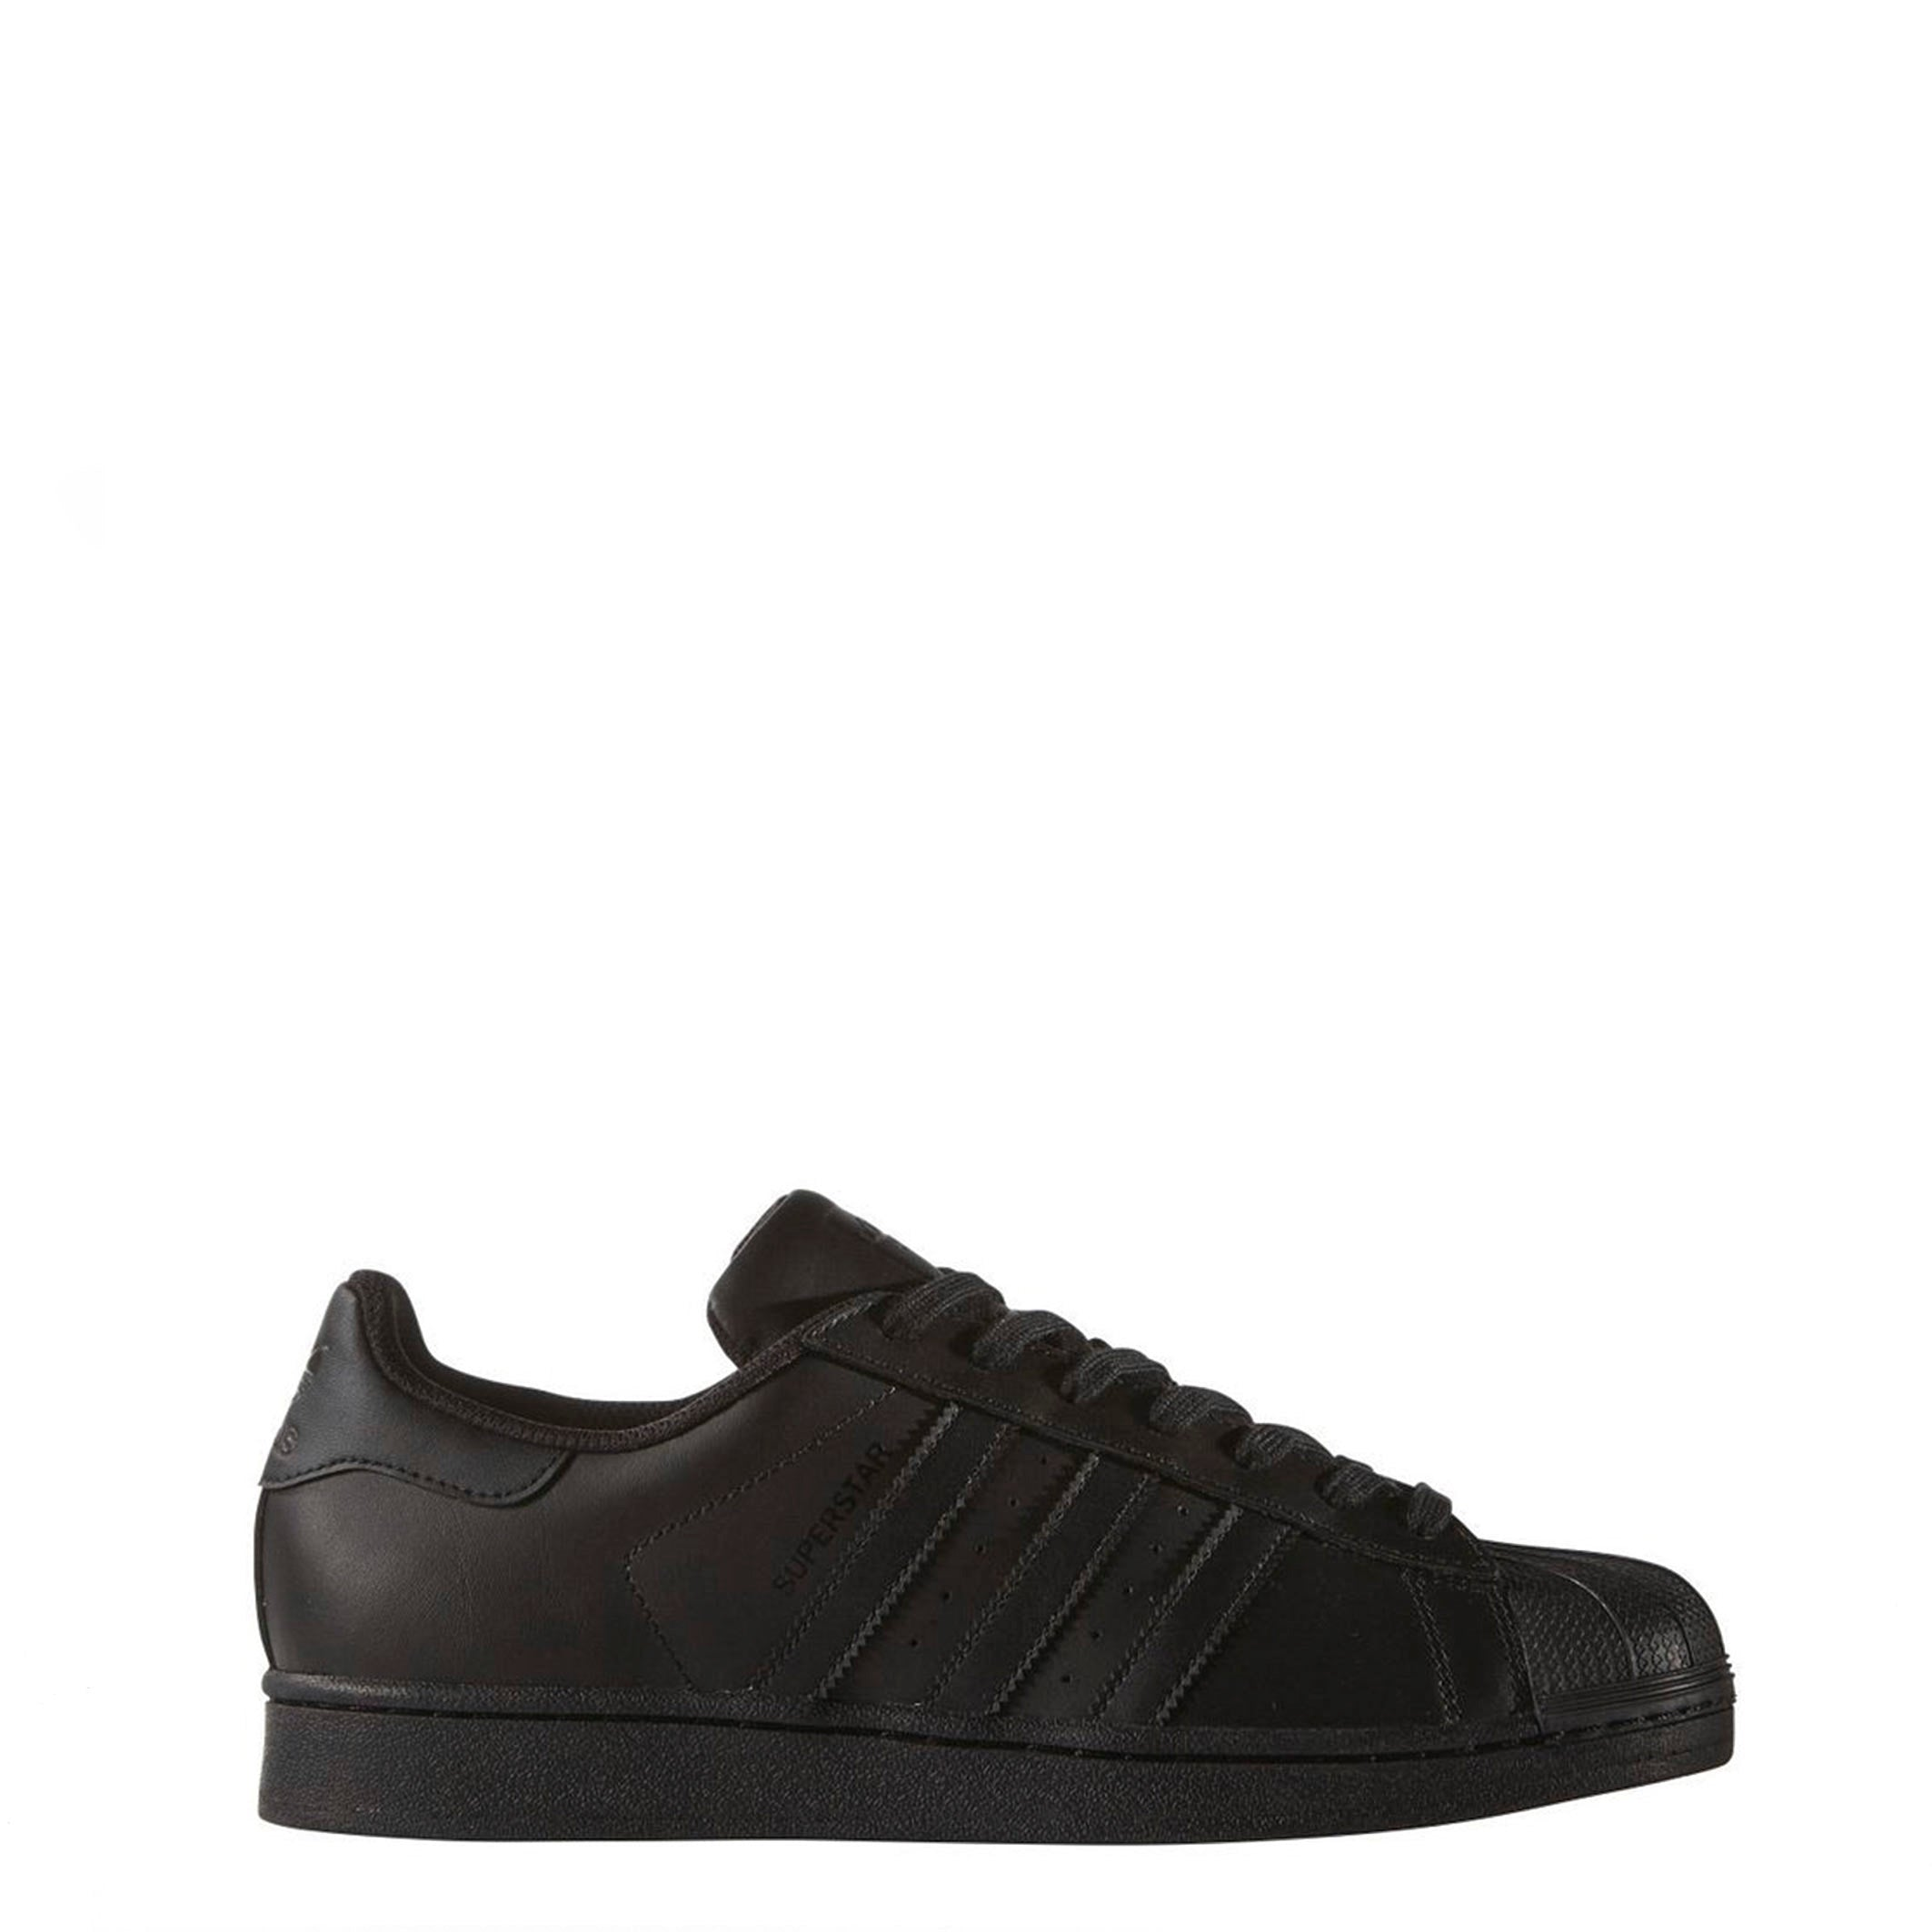 messieurs et mesdames adidas superstar excellent craft promotion international la promotion craft de choix saisonnier 5c996c